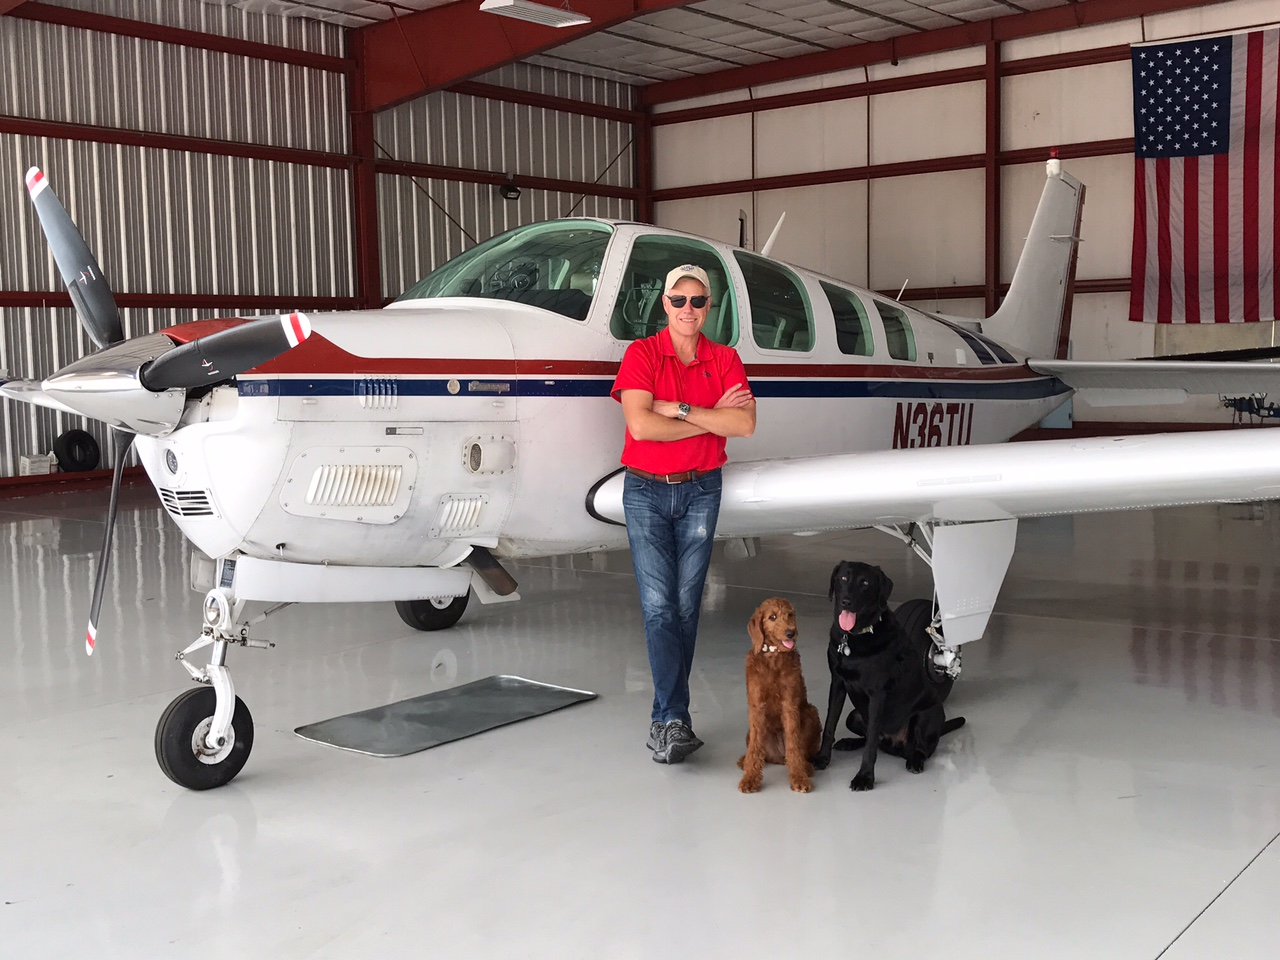 Miles stands next to his plane with his dogs by his side.